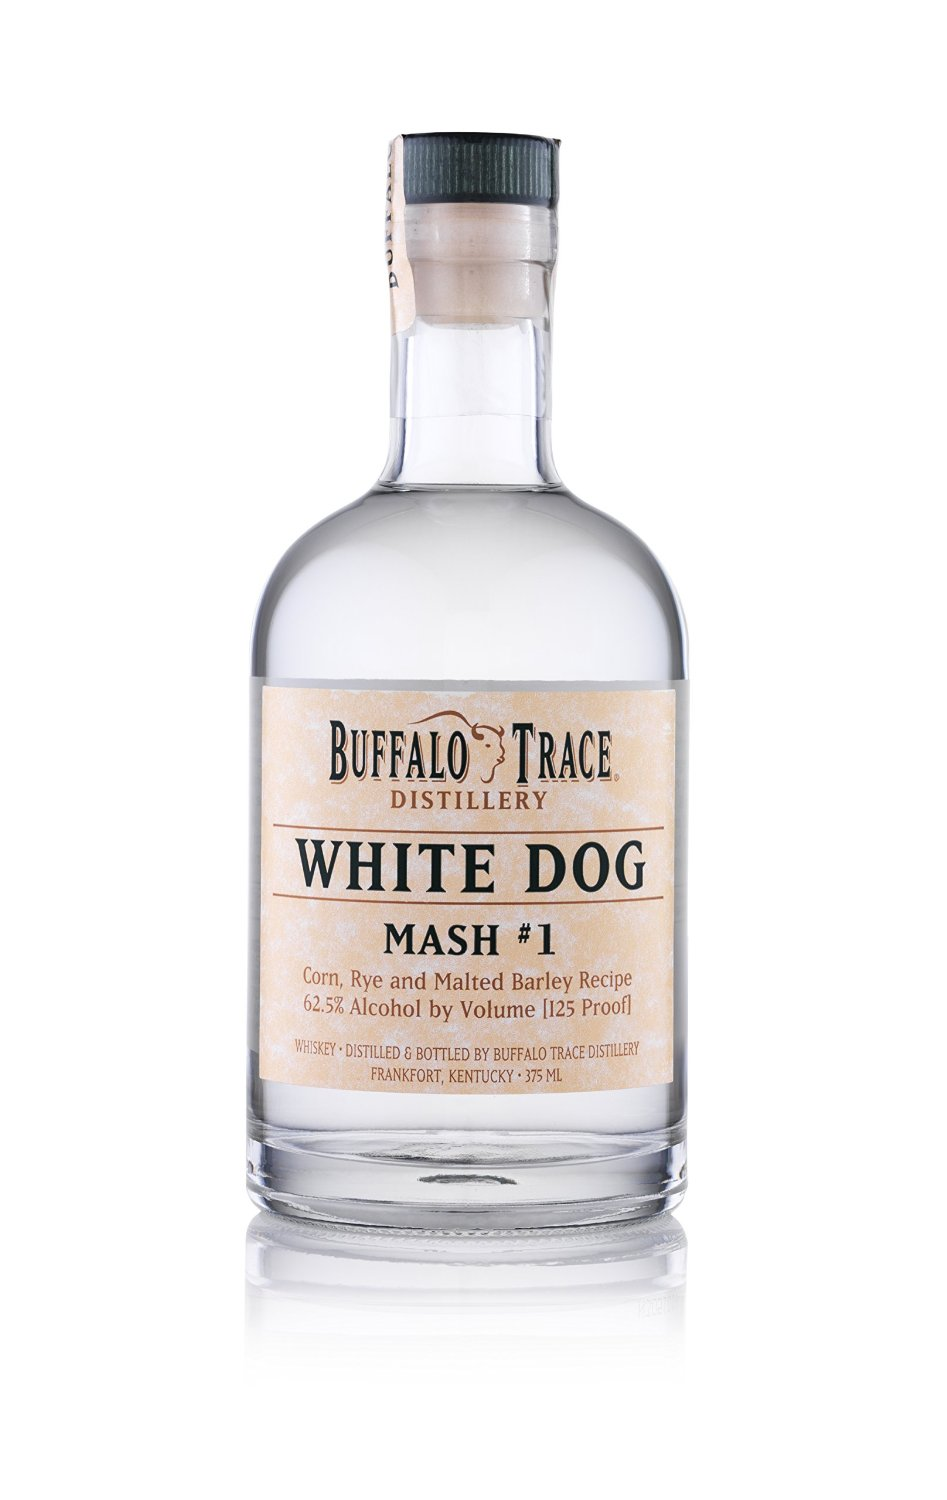 Buffalo Trace White Dog Mash Whisky